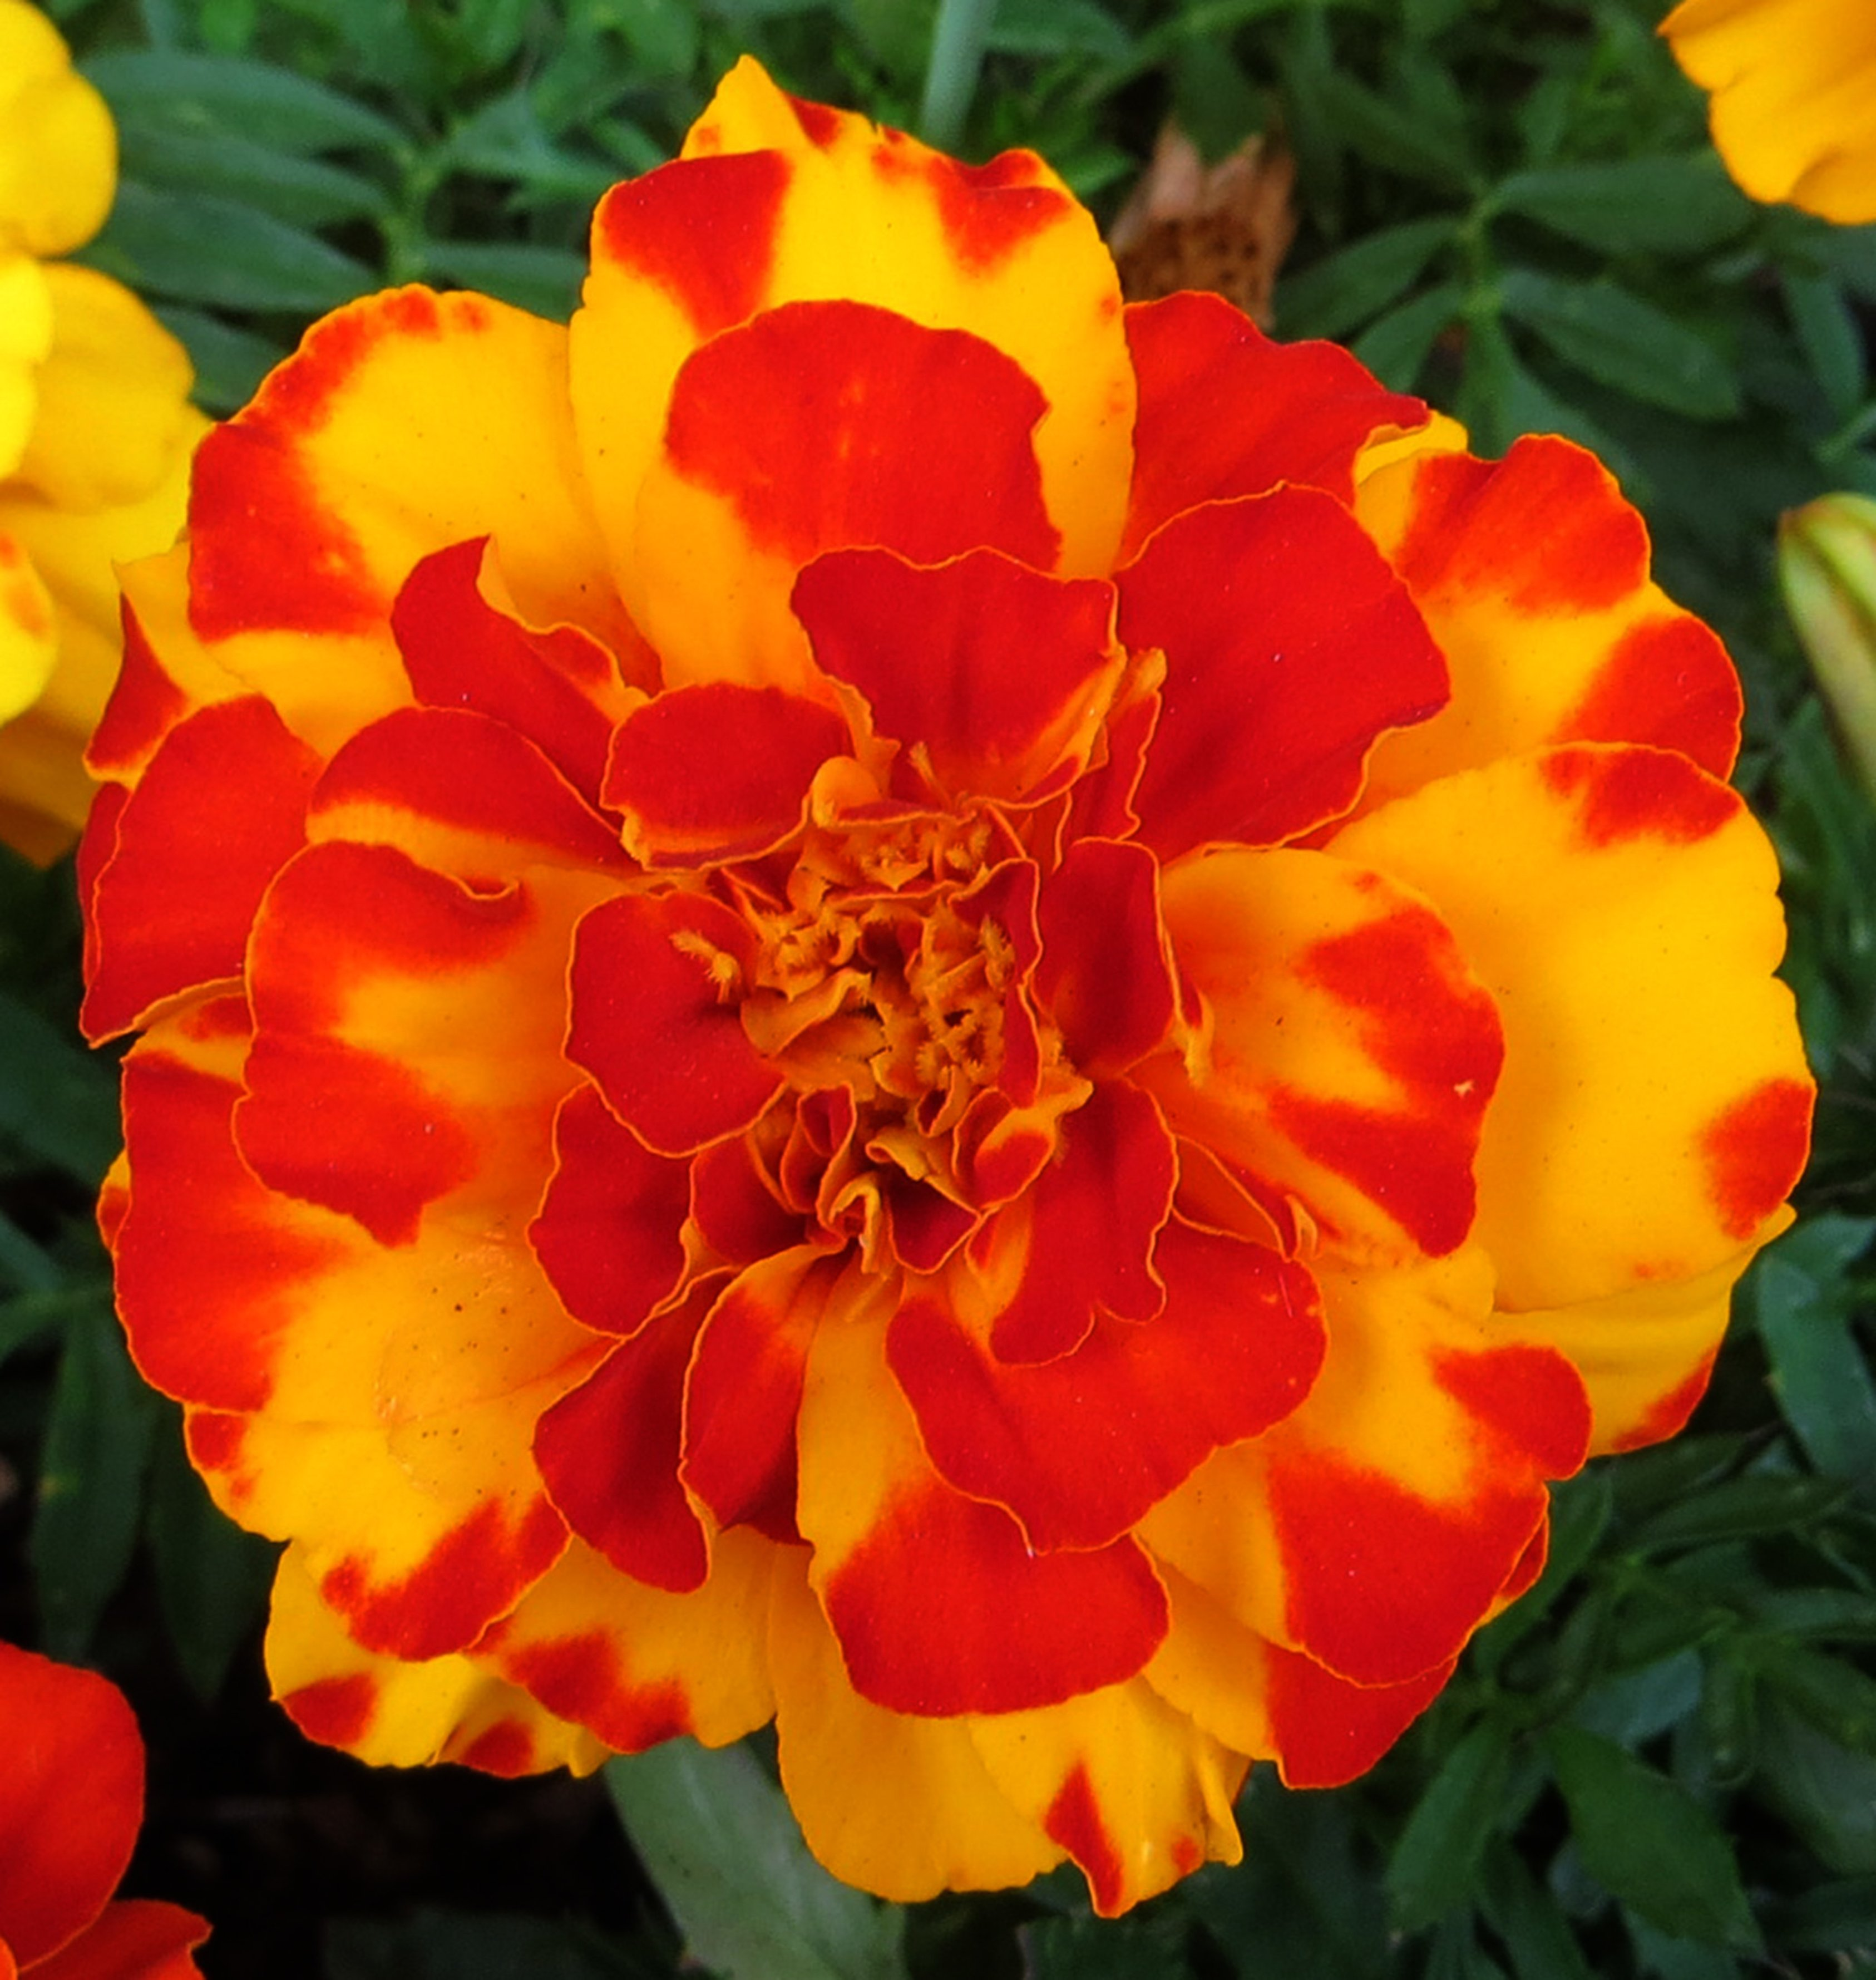 Why we love marigolds